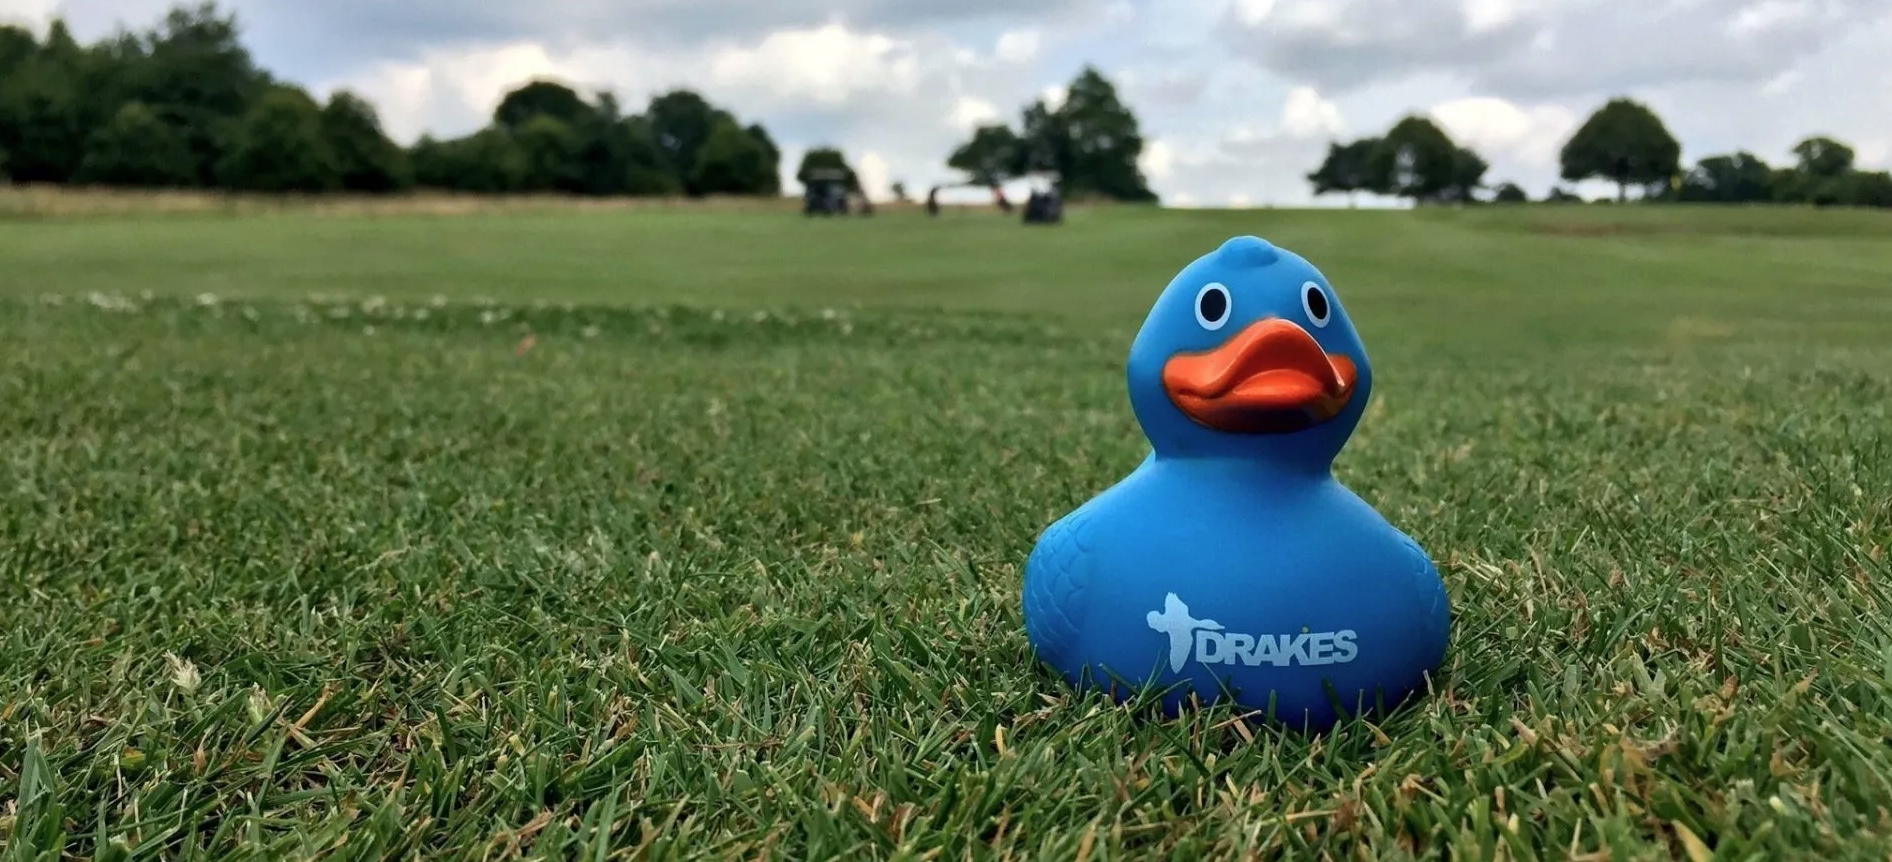 Save the Date - Drakes Golf Day 2021!